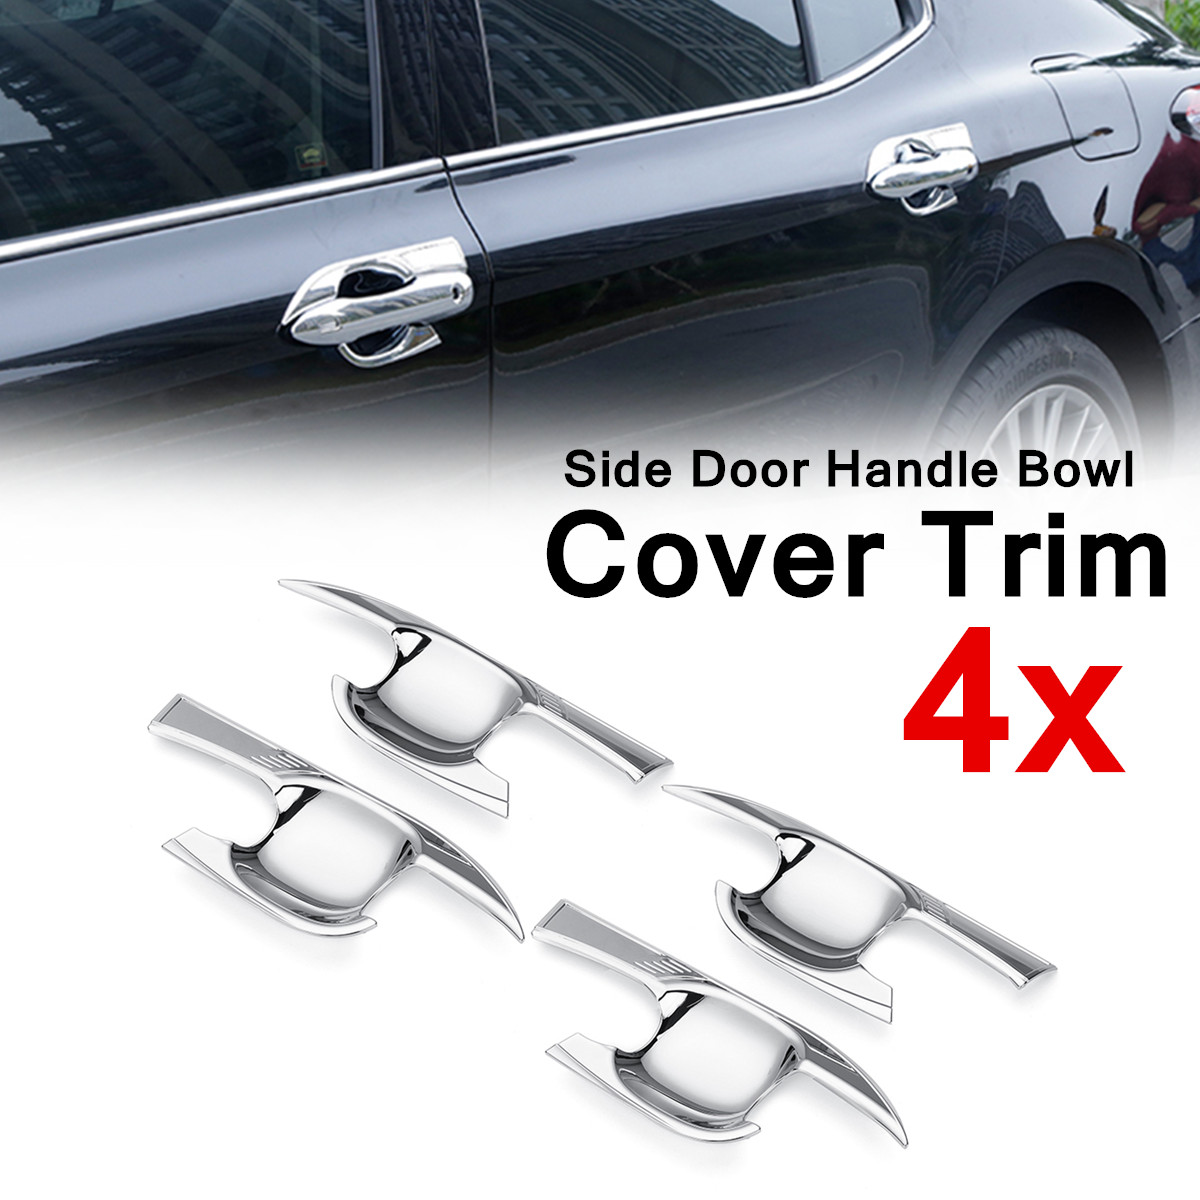 4PCS ABS Chrome Side 265x106mm Door Handle Bowl Cover Decor Trim Fit for Toyota Camry 2018 Easy to Install High-end Charming